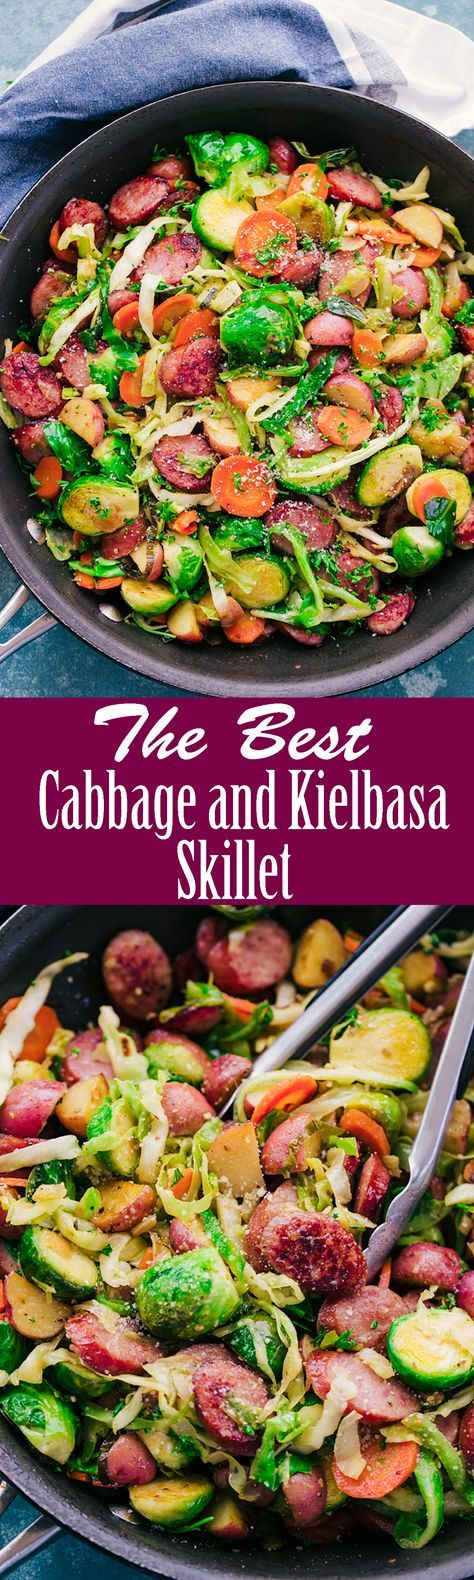 Best Cabbage and Kielbasa Skillet - The Food Cafe